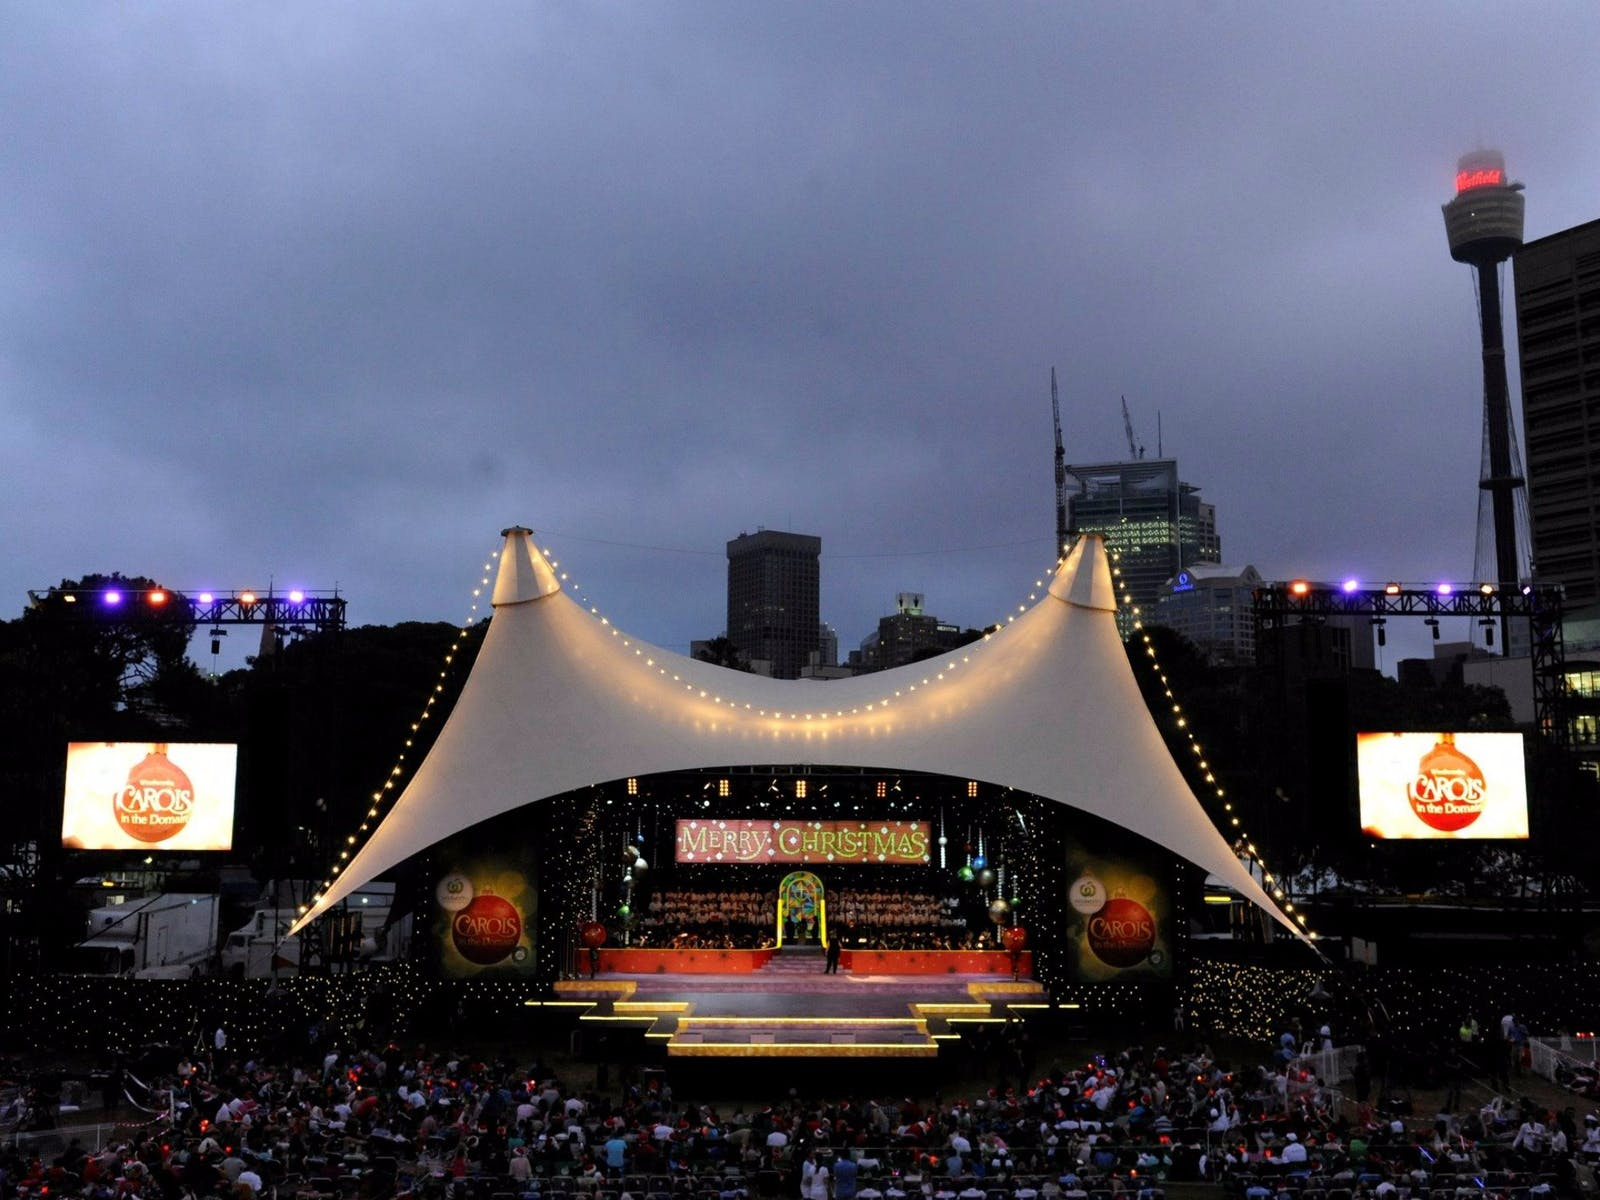 Image for Woolworths Carols in the Domain